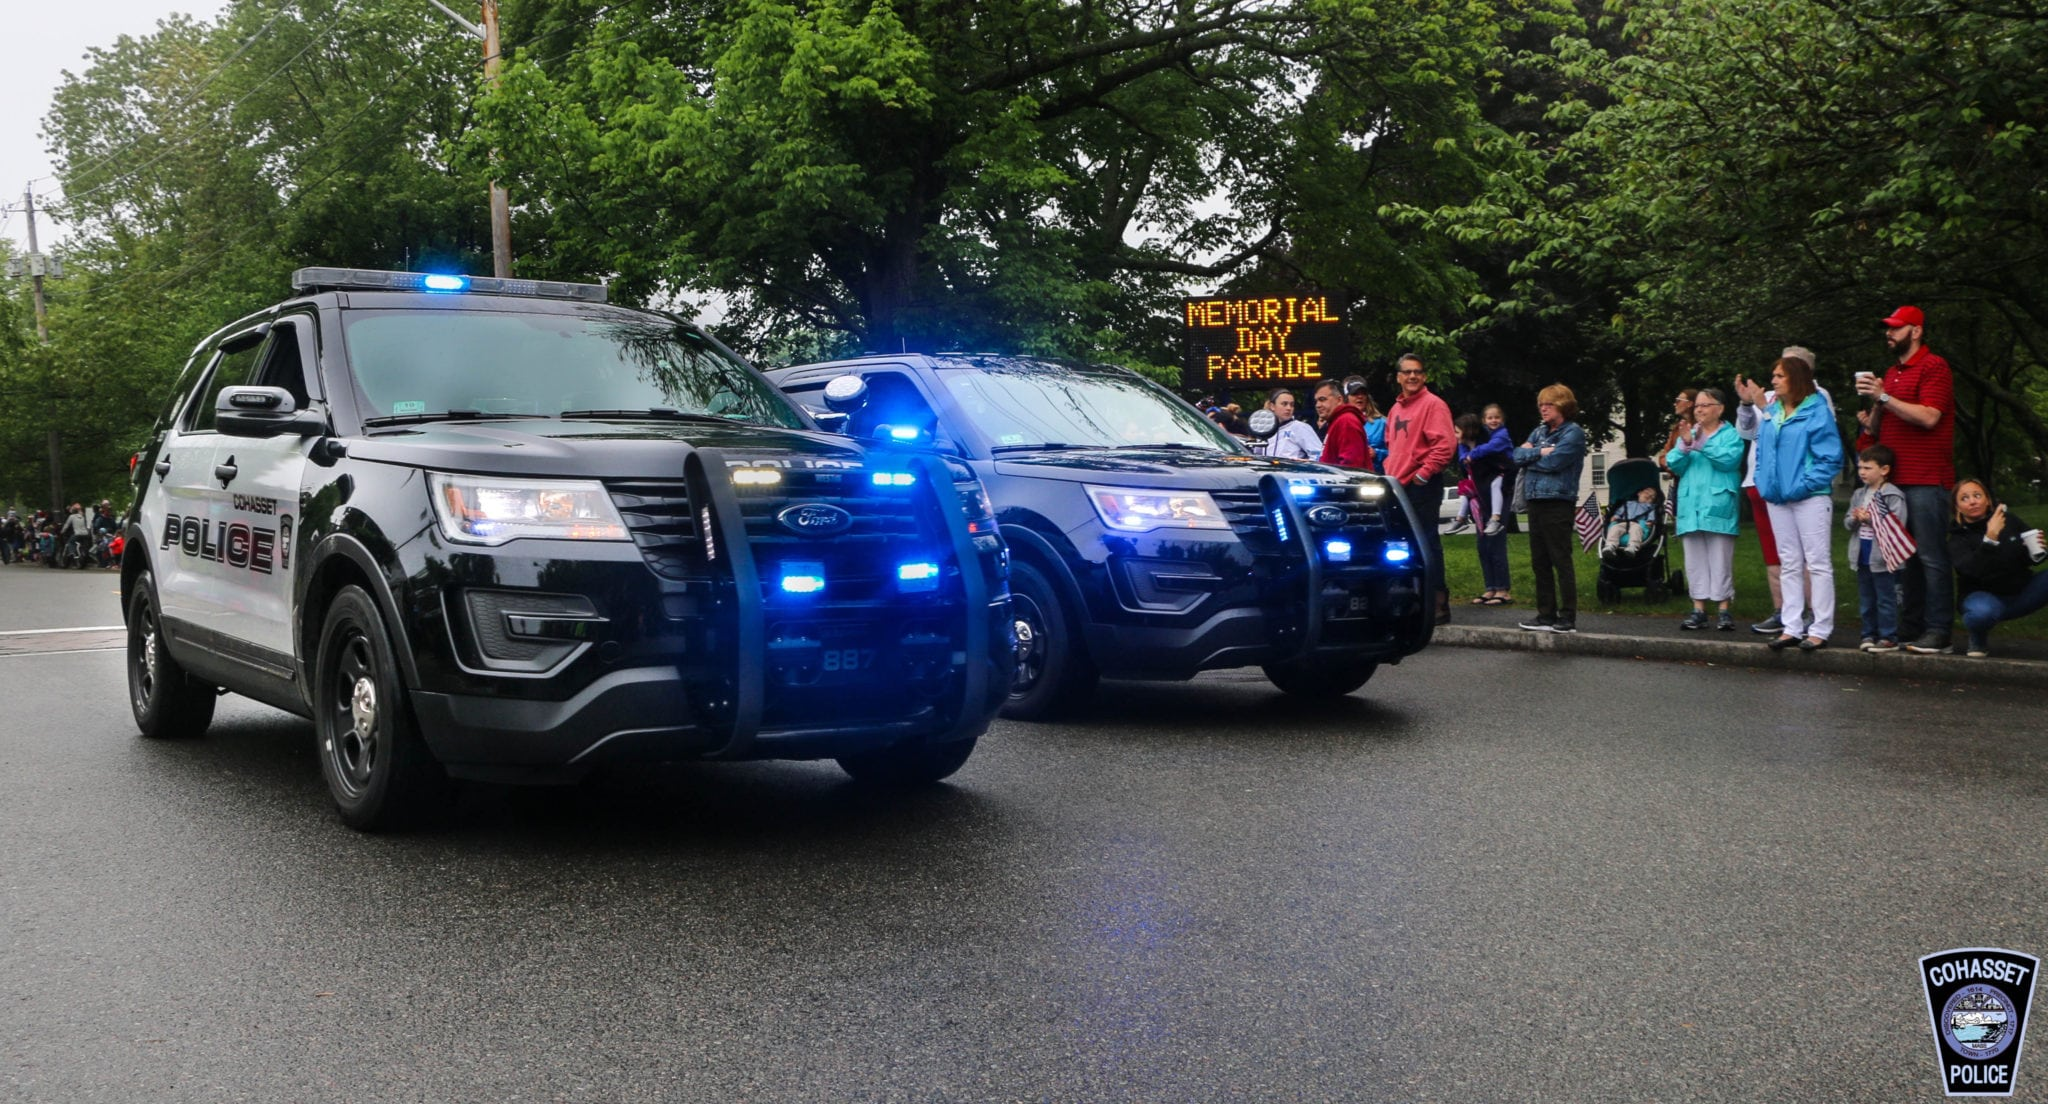 Divisions - Cohasset Police Department